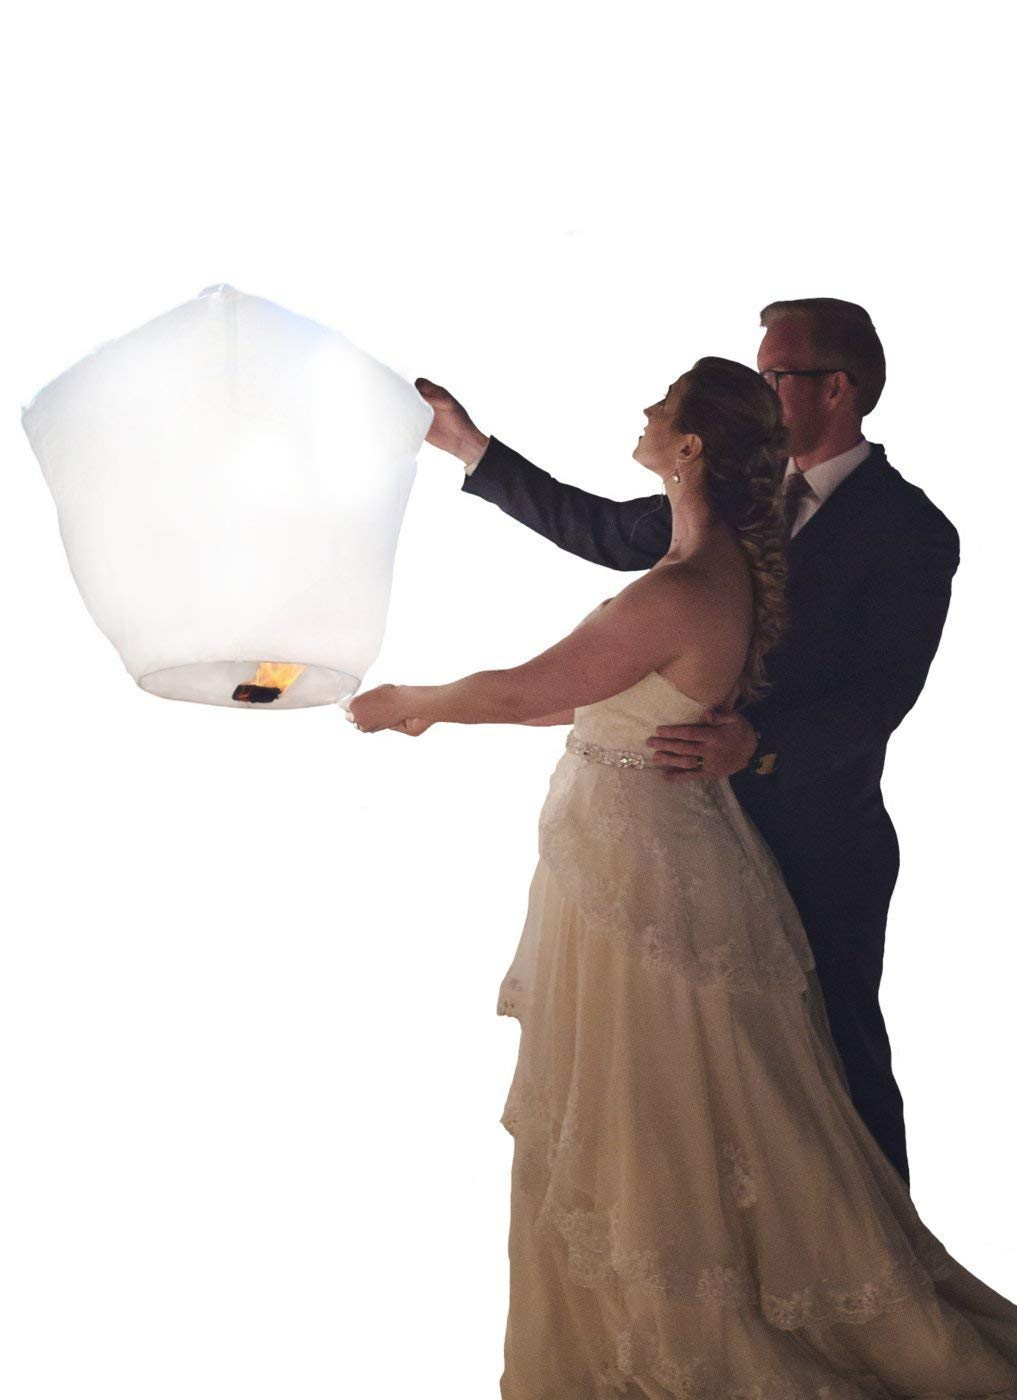 Chinese Paper Flying Sky Lanterns - for Wedding, Christmas, Memorial, Party Wish - Large White Eco Friendly 100% Biodegradable 10 Pack Lantern Set with Small Japanese Wax Paper to Light (Diamond)